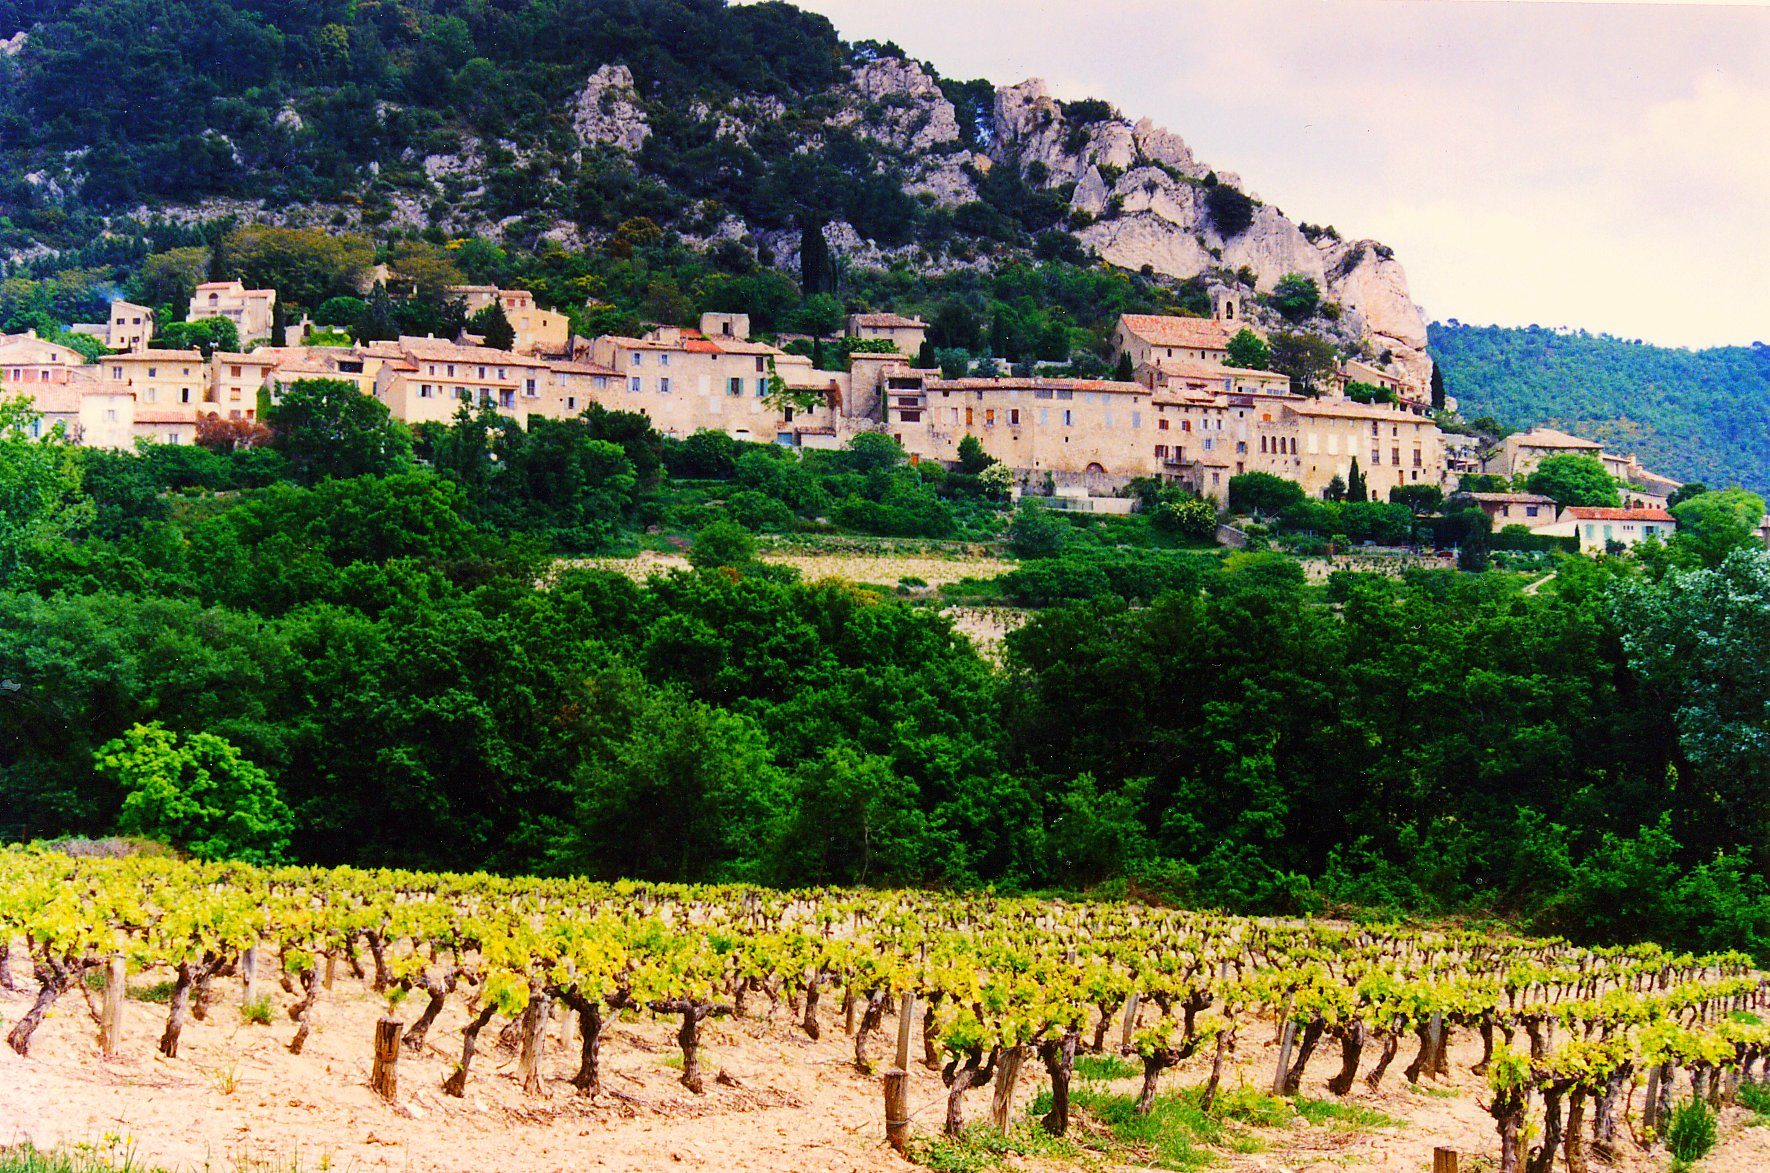 Cotes_du_Rhone_Village_Seguret_vineyards.jpg